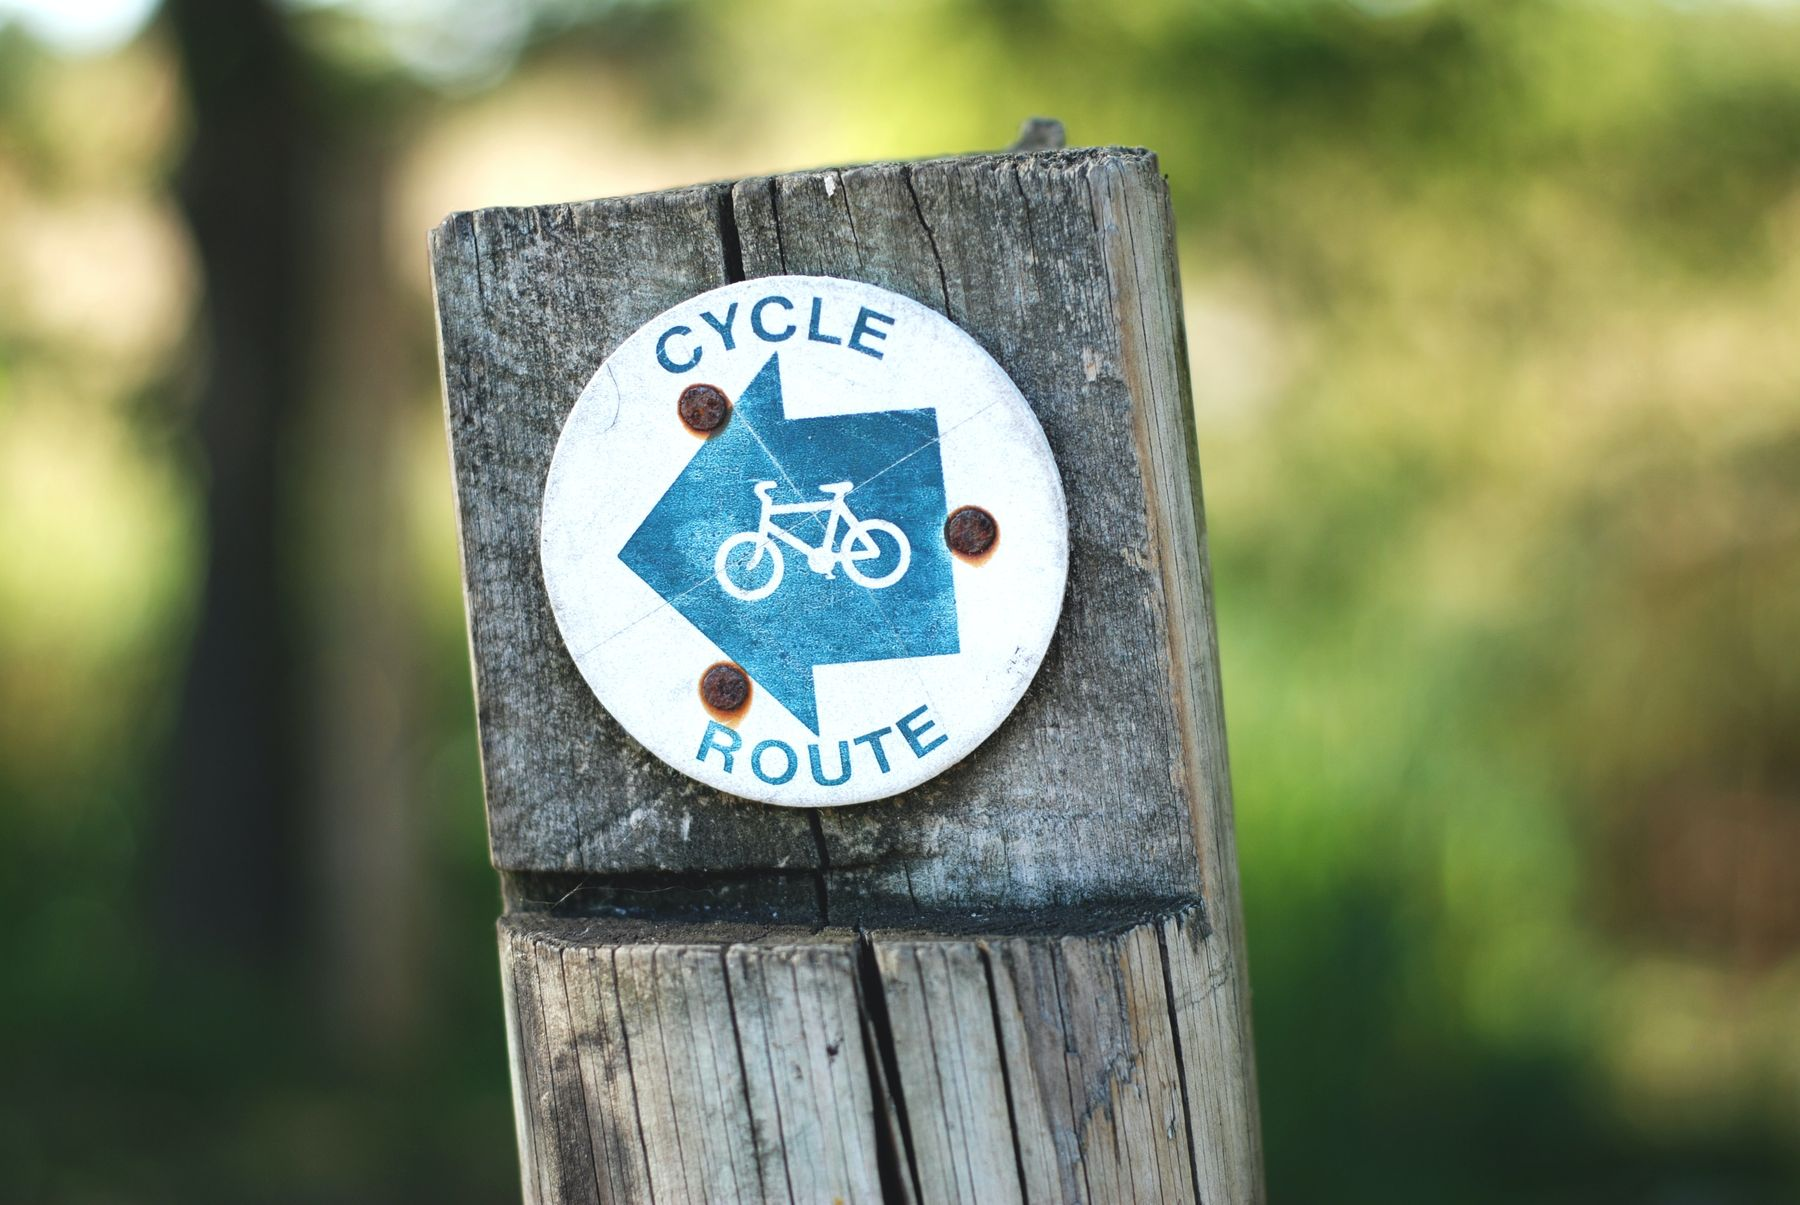 cycle route sign in blue